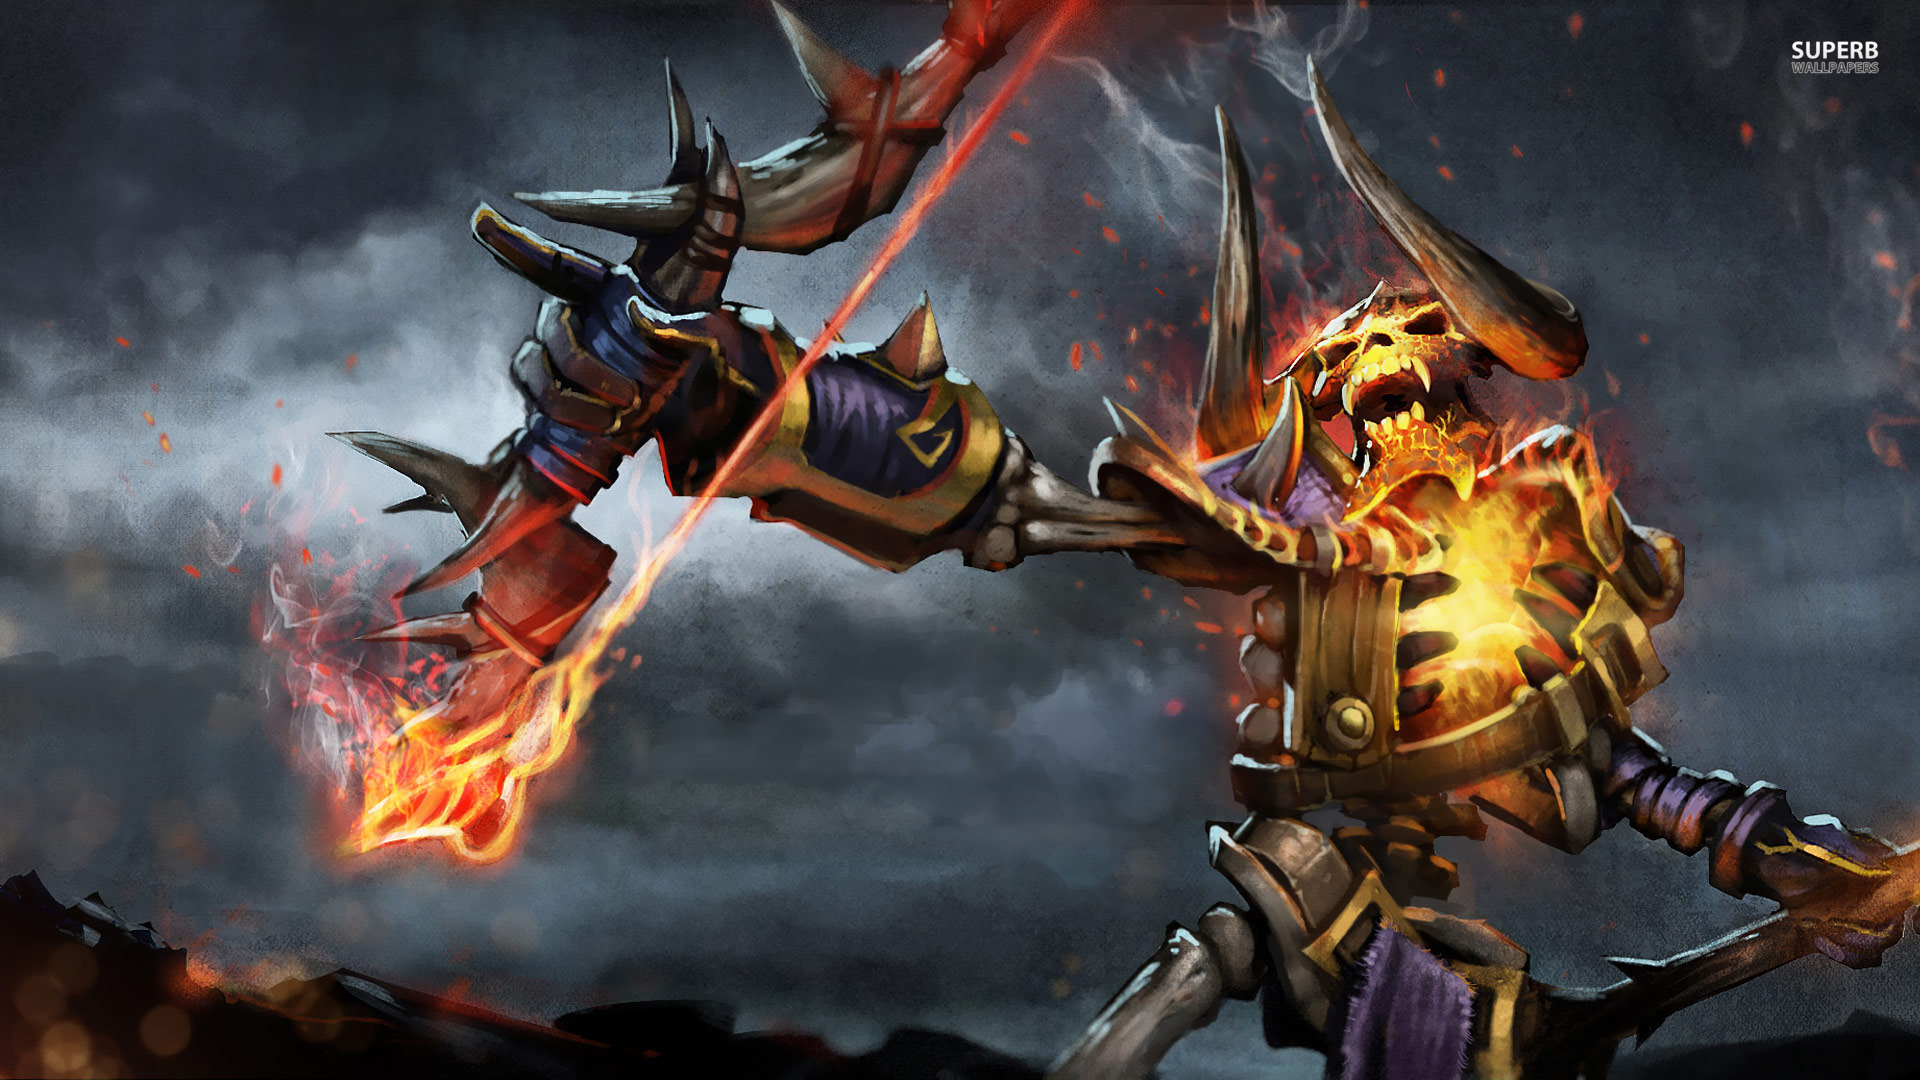 Guide: Best Dota 2 Performance Settings - Esports Edition